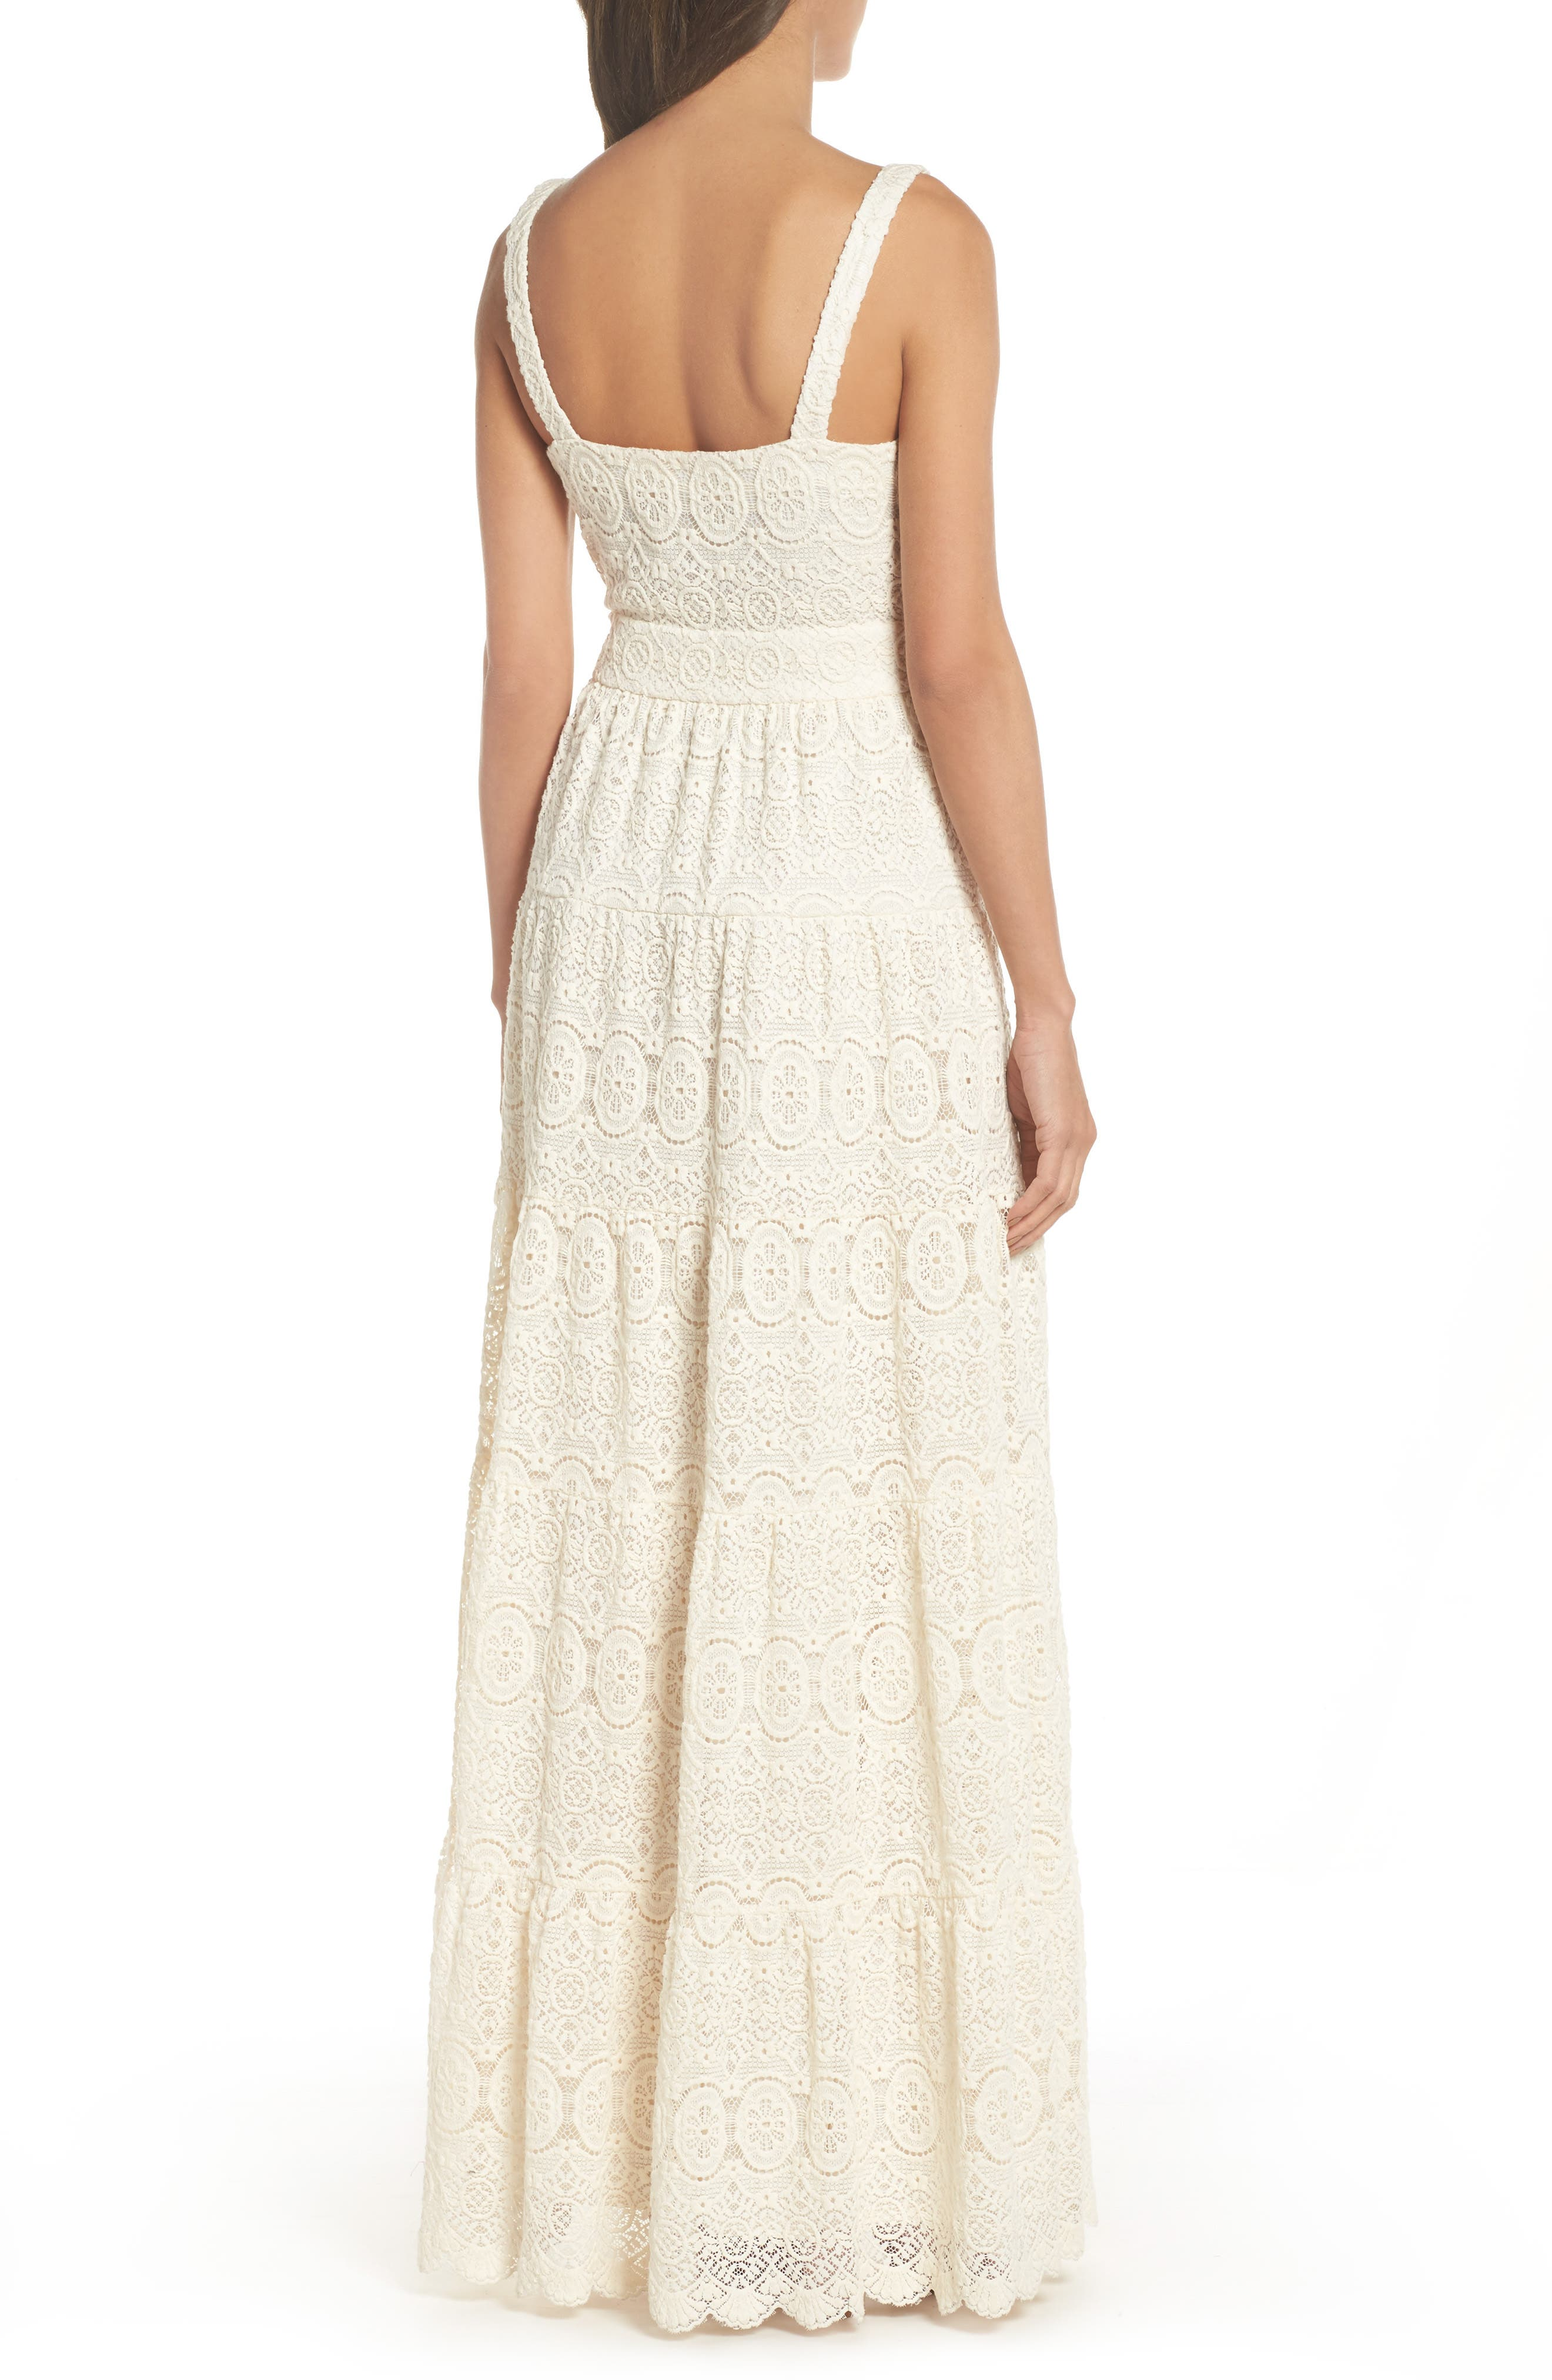 Tiered Lace Maxi Dress,                             Alternate thumbnail 2, color,                             900